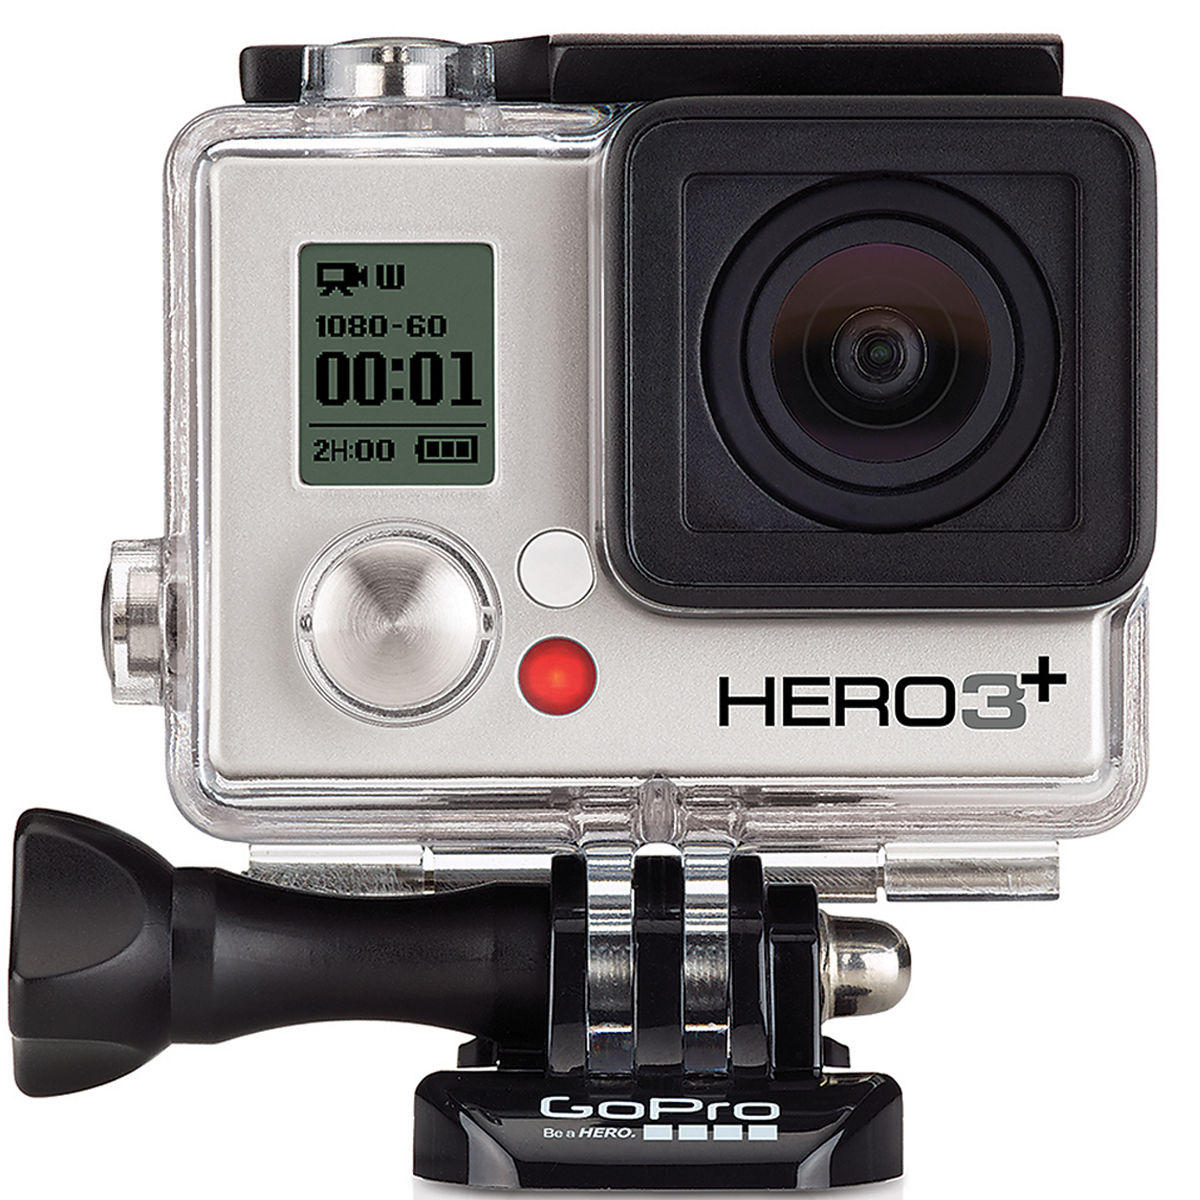 $149 GoPro HERO3+ Silver Edition Camera Manufacturer Refurbished